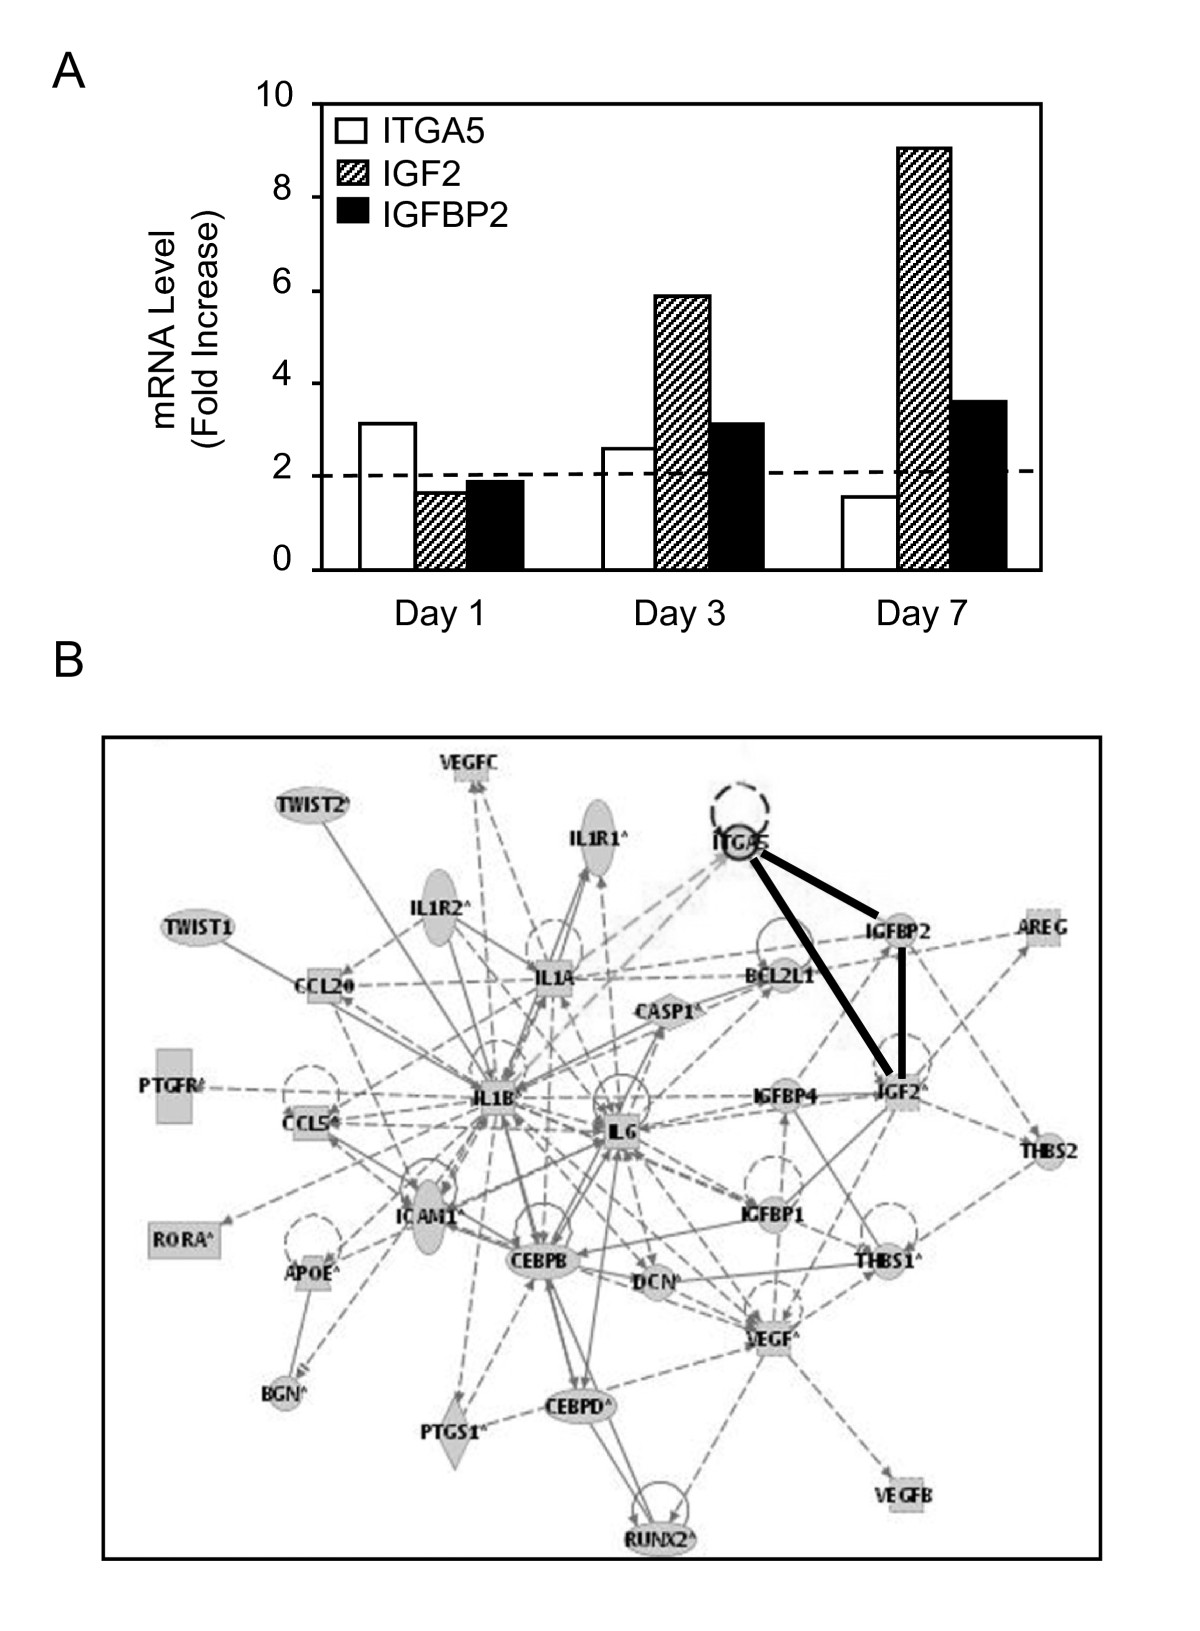 http://static-content.springer.com/image/art%3A10.1186%2F1471-2121-11-44/MediaObjects/12860_2009_Article_489_Fig1_HTML.jpg